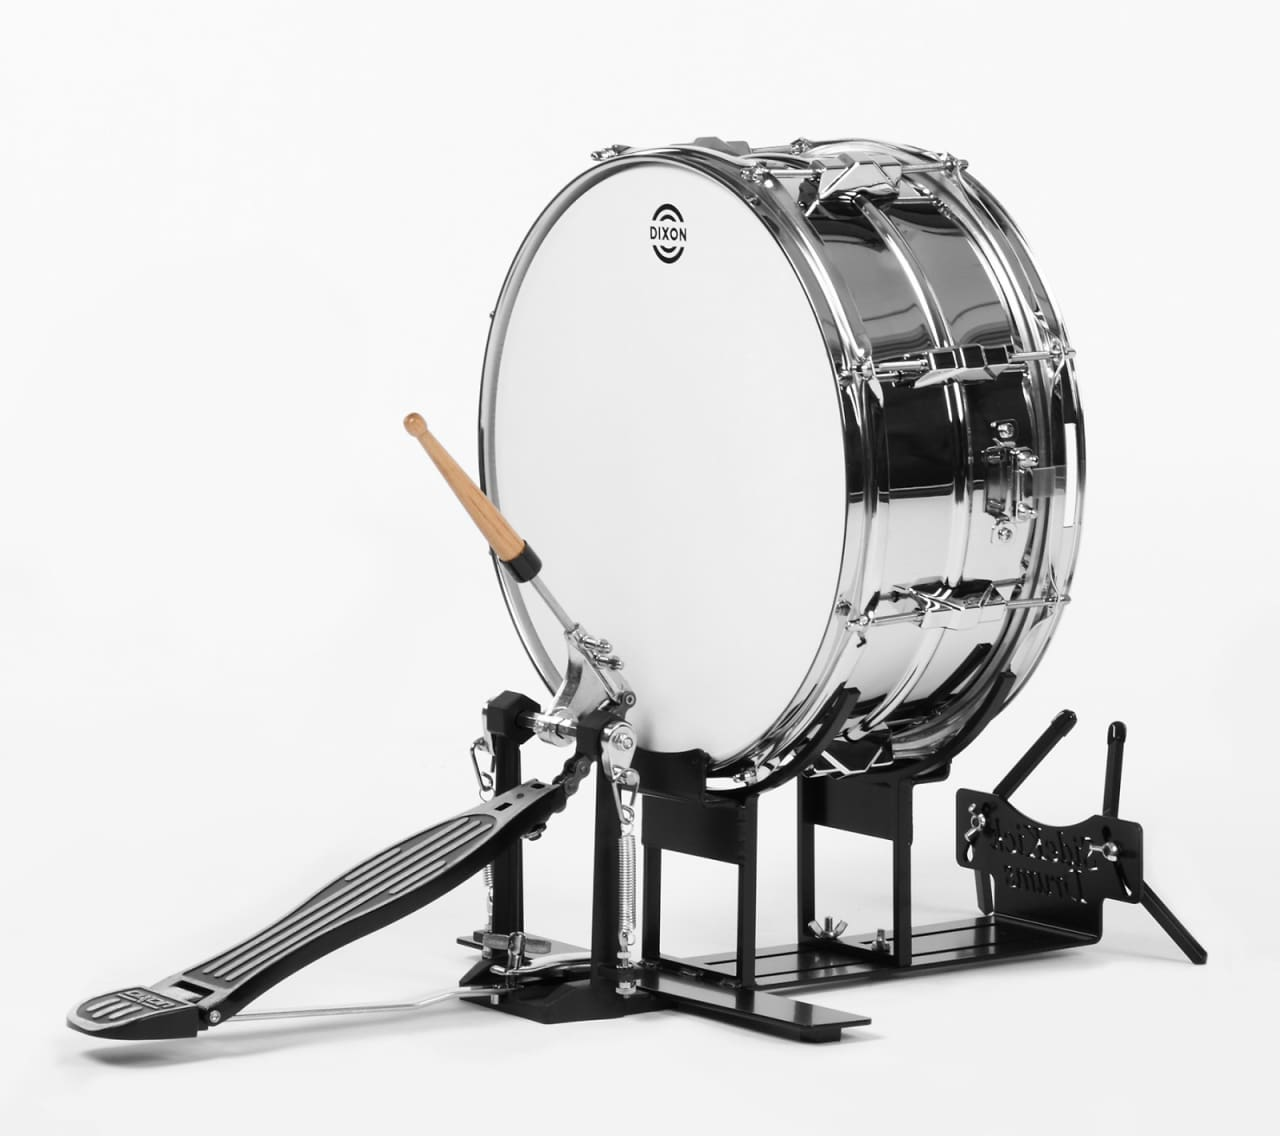 Amazon.com: Progressive Complete Learn to Play Drums ...